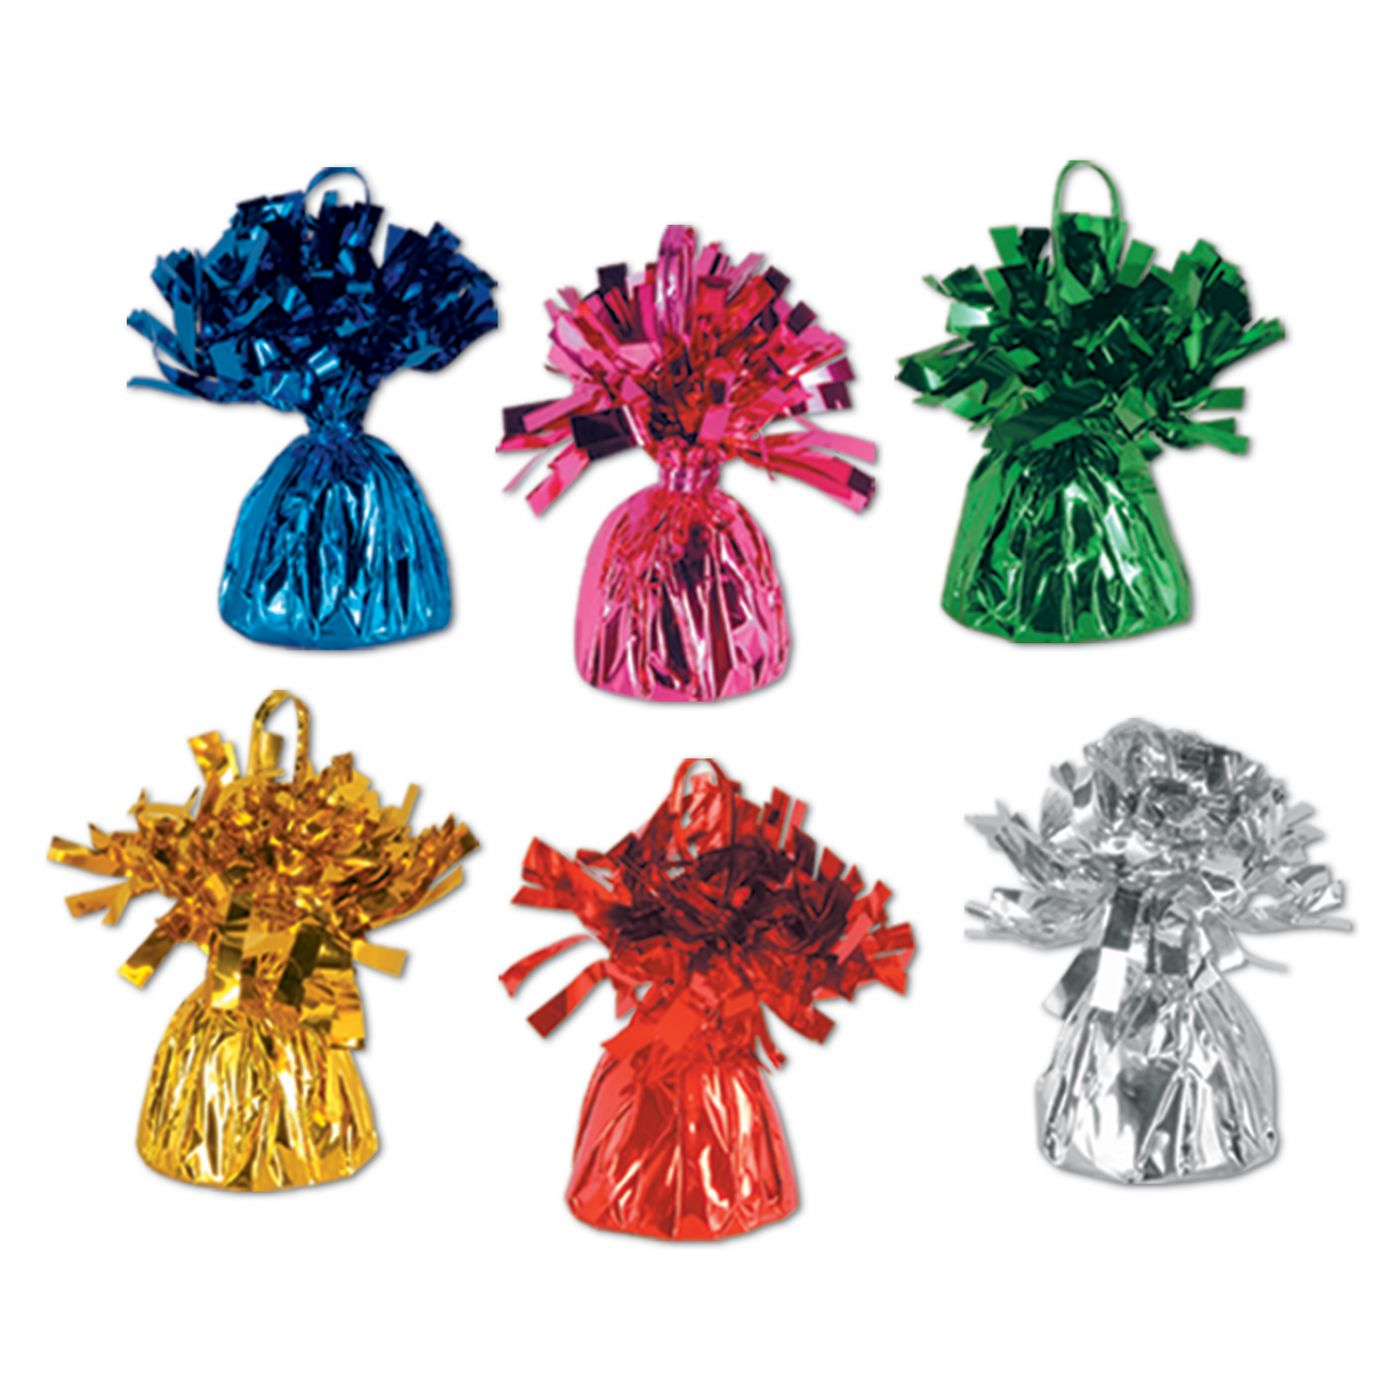 Metallic Wrapped Balloon Weights image